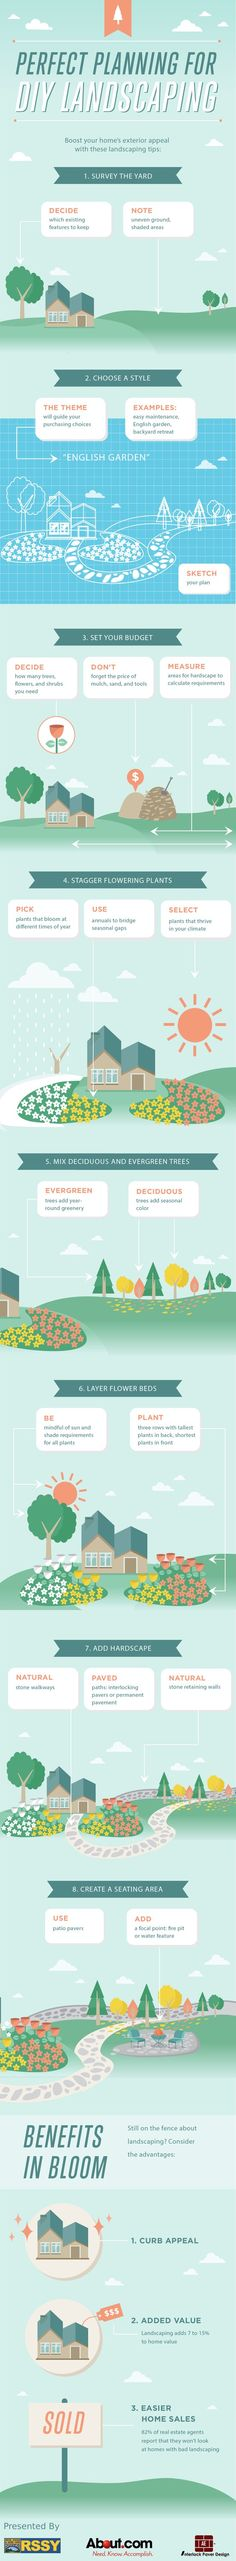 Garden Design: Perfet Planning For DIY Landscaping Infographic Landscaping Tips, Garden Landscaping, Landscape Design, Garden Design, Landscape Architecture, Lawn And Garden, Home And Garden, Selling Your House, Green Life